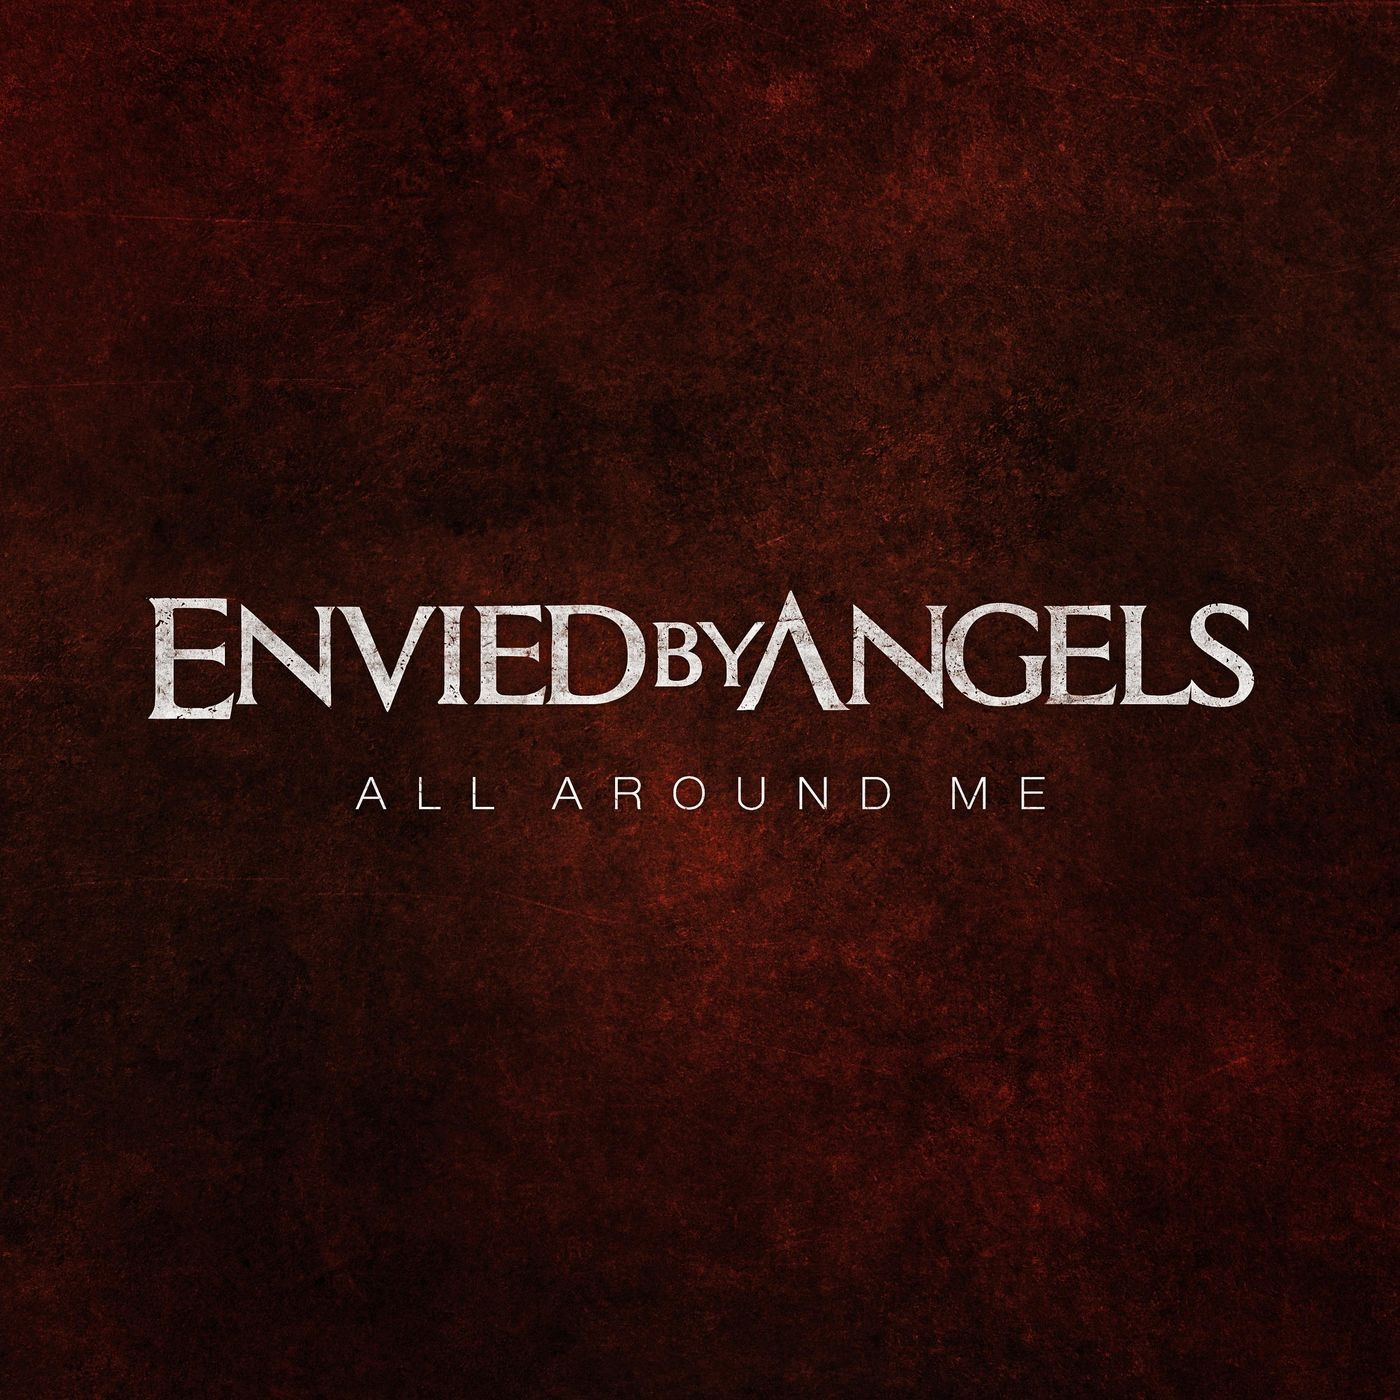 Envied by Angels - All Around Me [single] (2021)